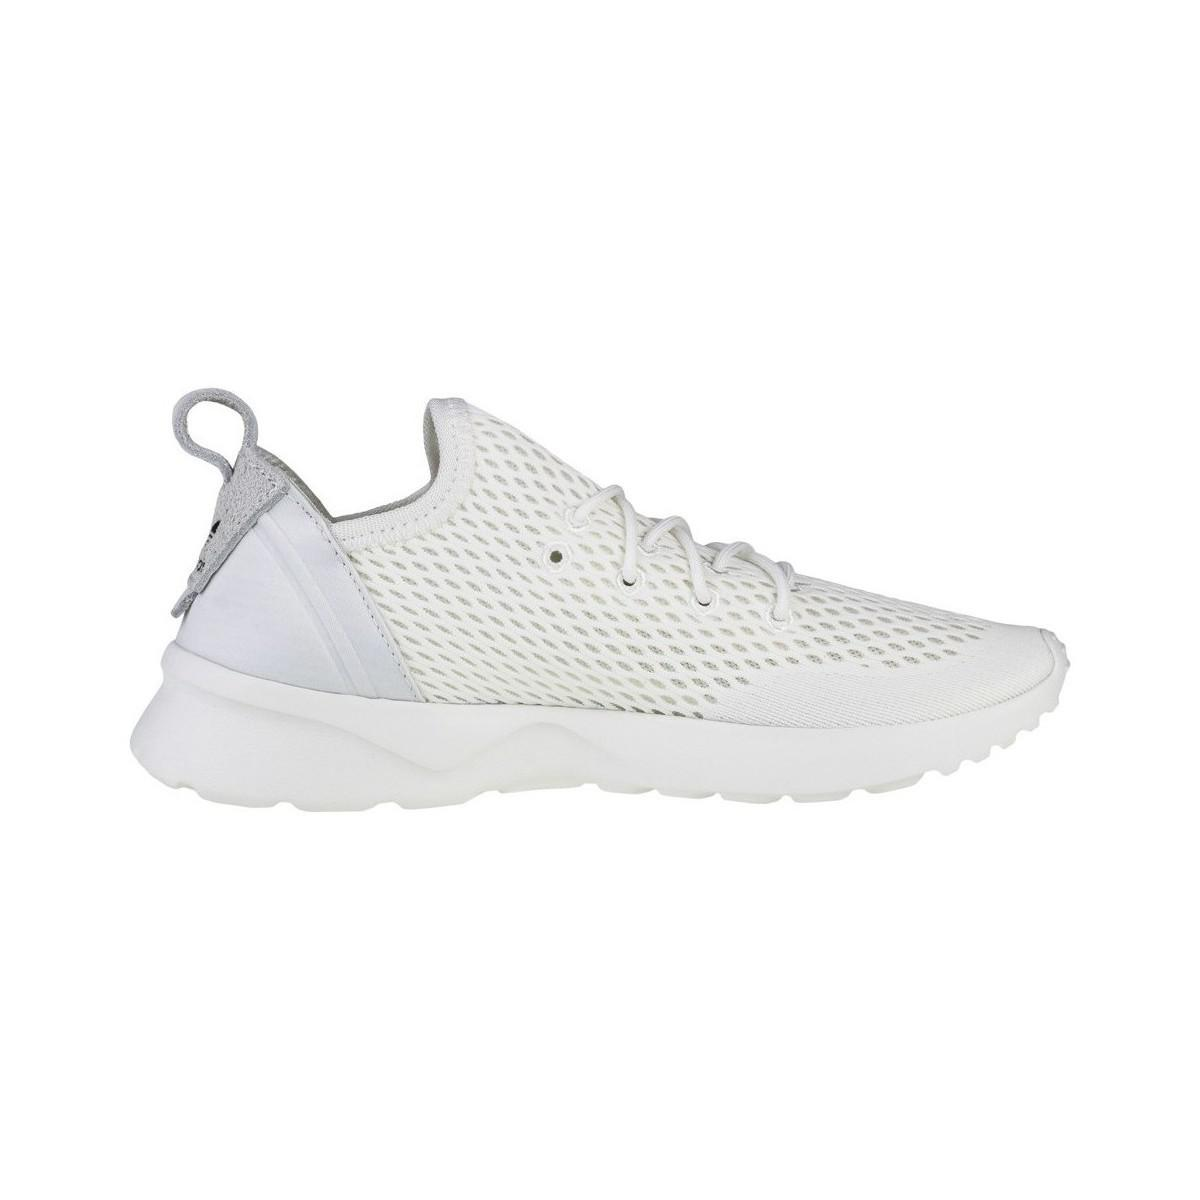 2b573f7e5f015 Adidas Zx Flux Adv Virtue Em Women s Shoes (trainers) In Grey in ...